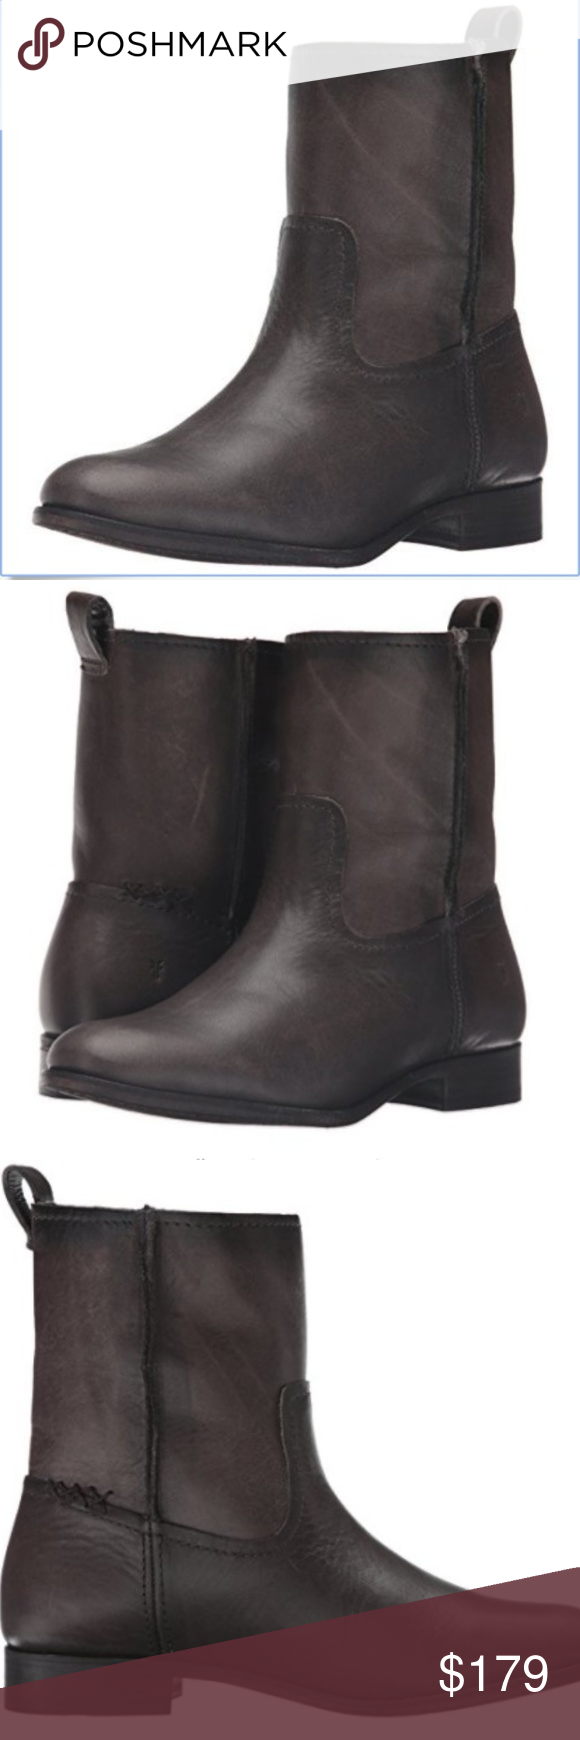 775f9f61ad6 FRYE Women's Cara Short Leather Boot Smoke NWT | Ankle boots, Sole ...